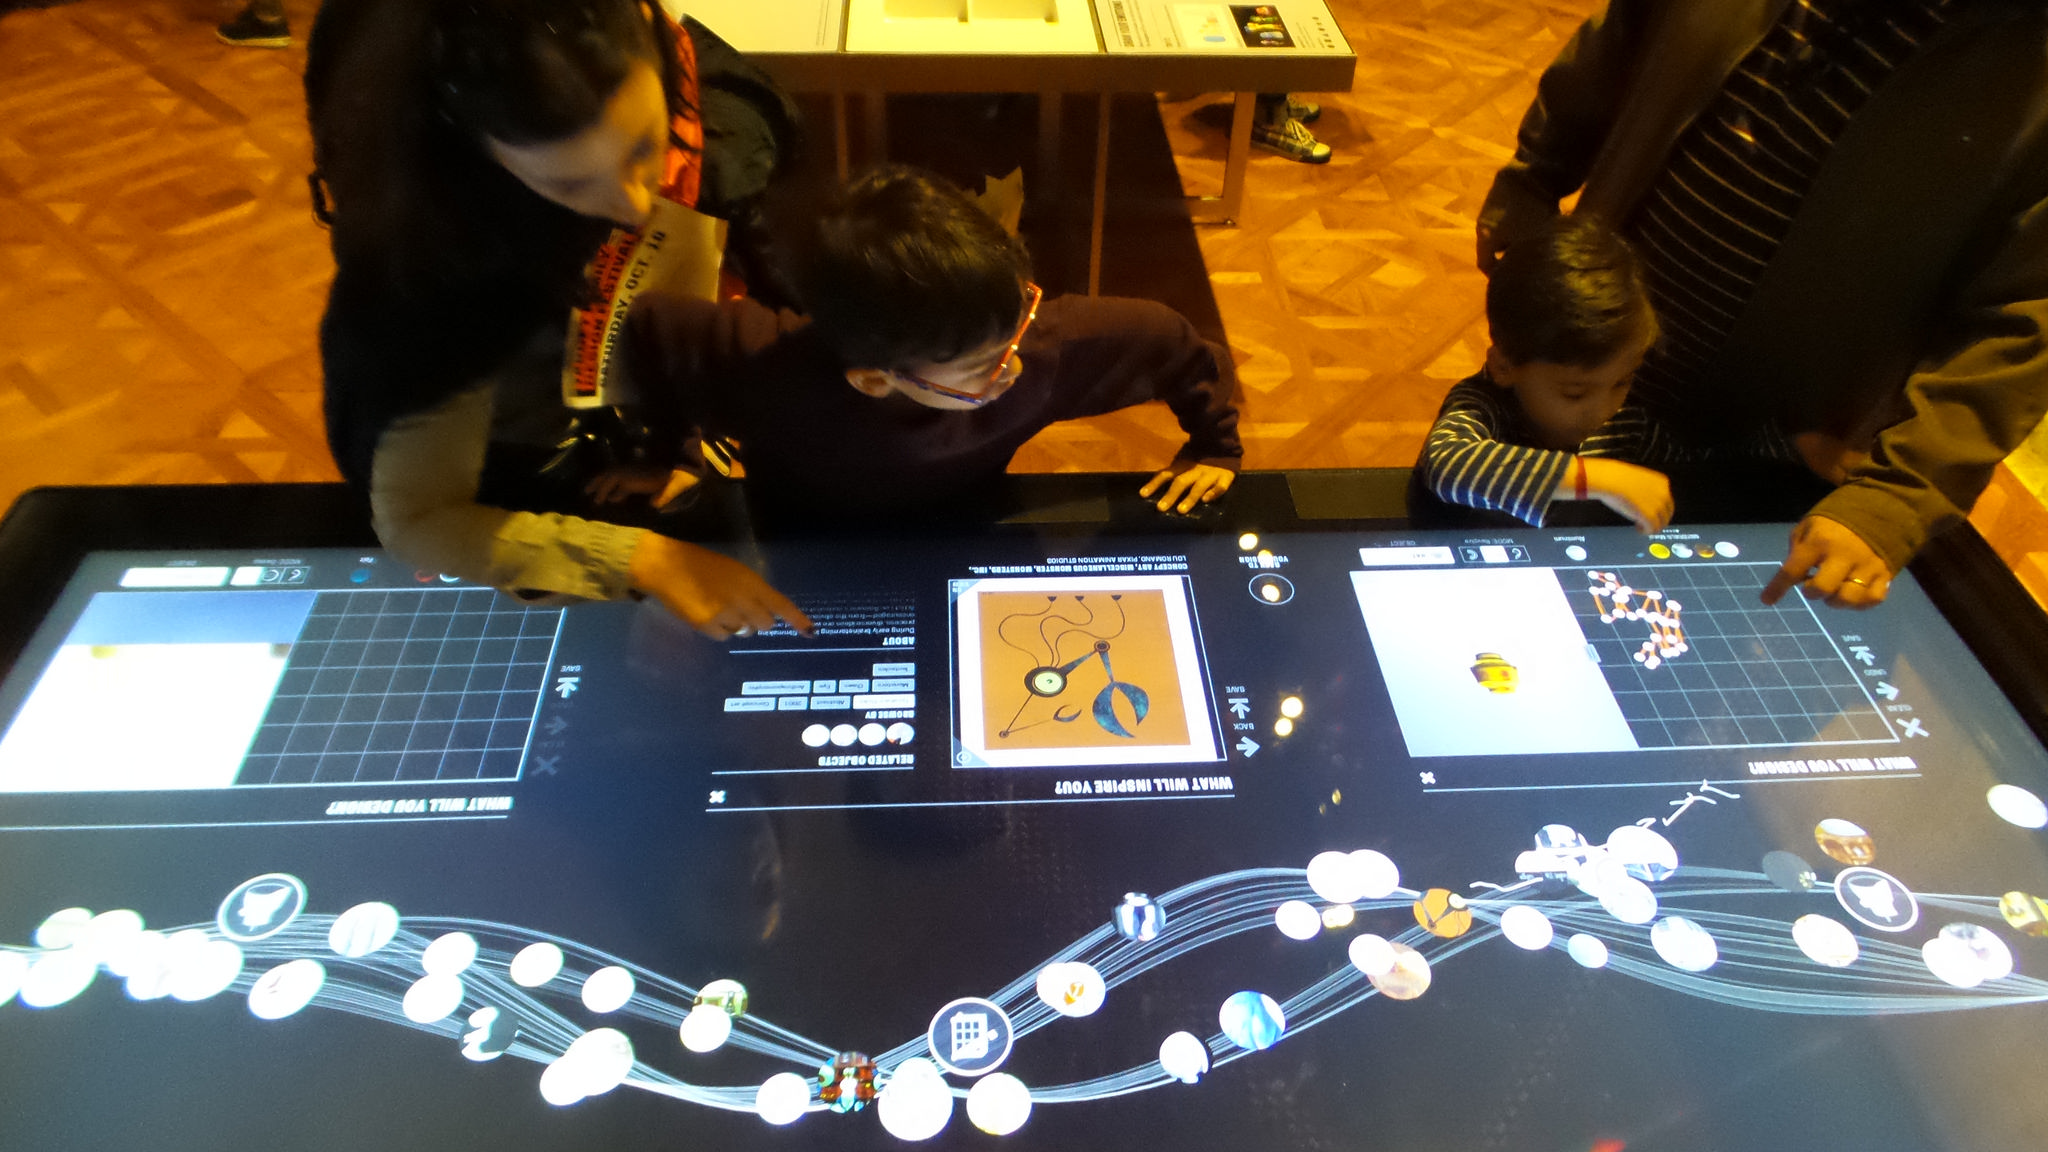 [Video] Cooper Hewitt Part 2: Building a More Participatory Museum